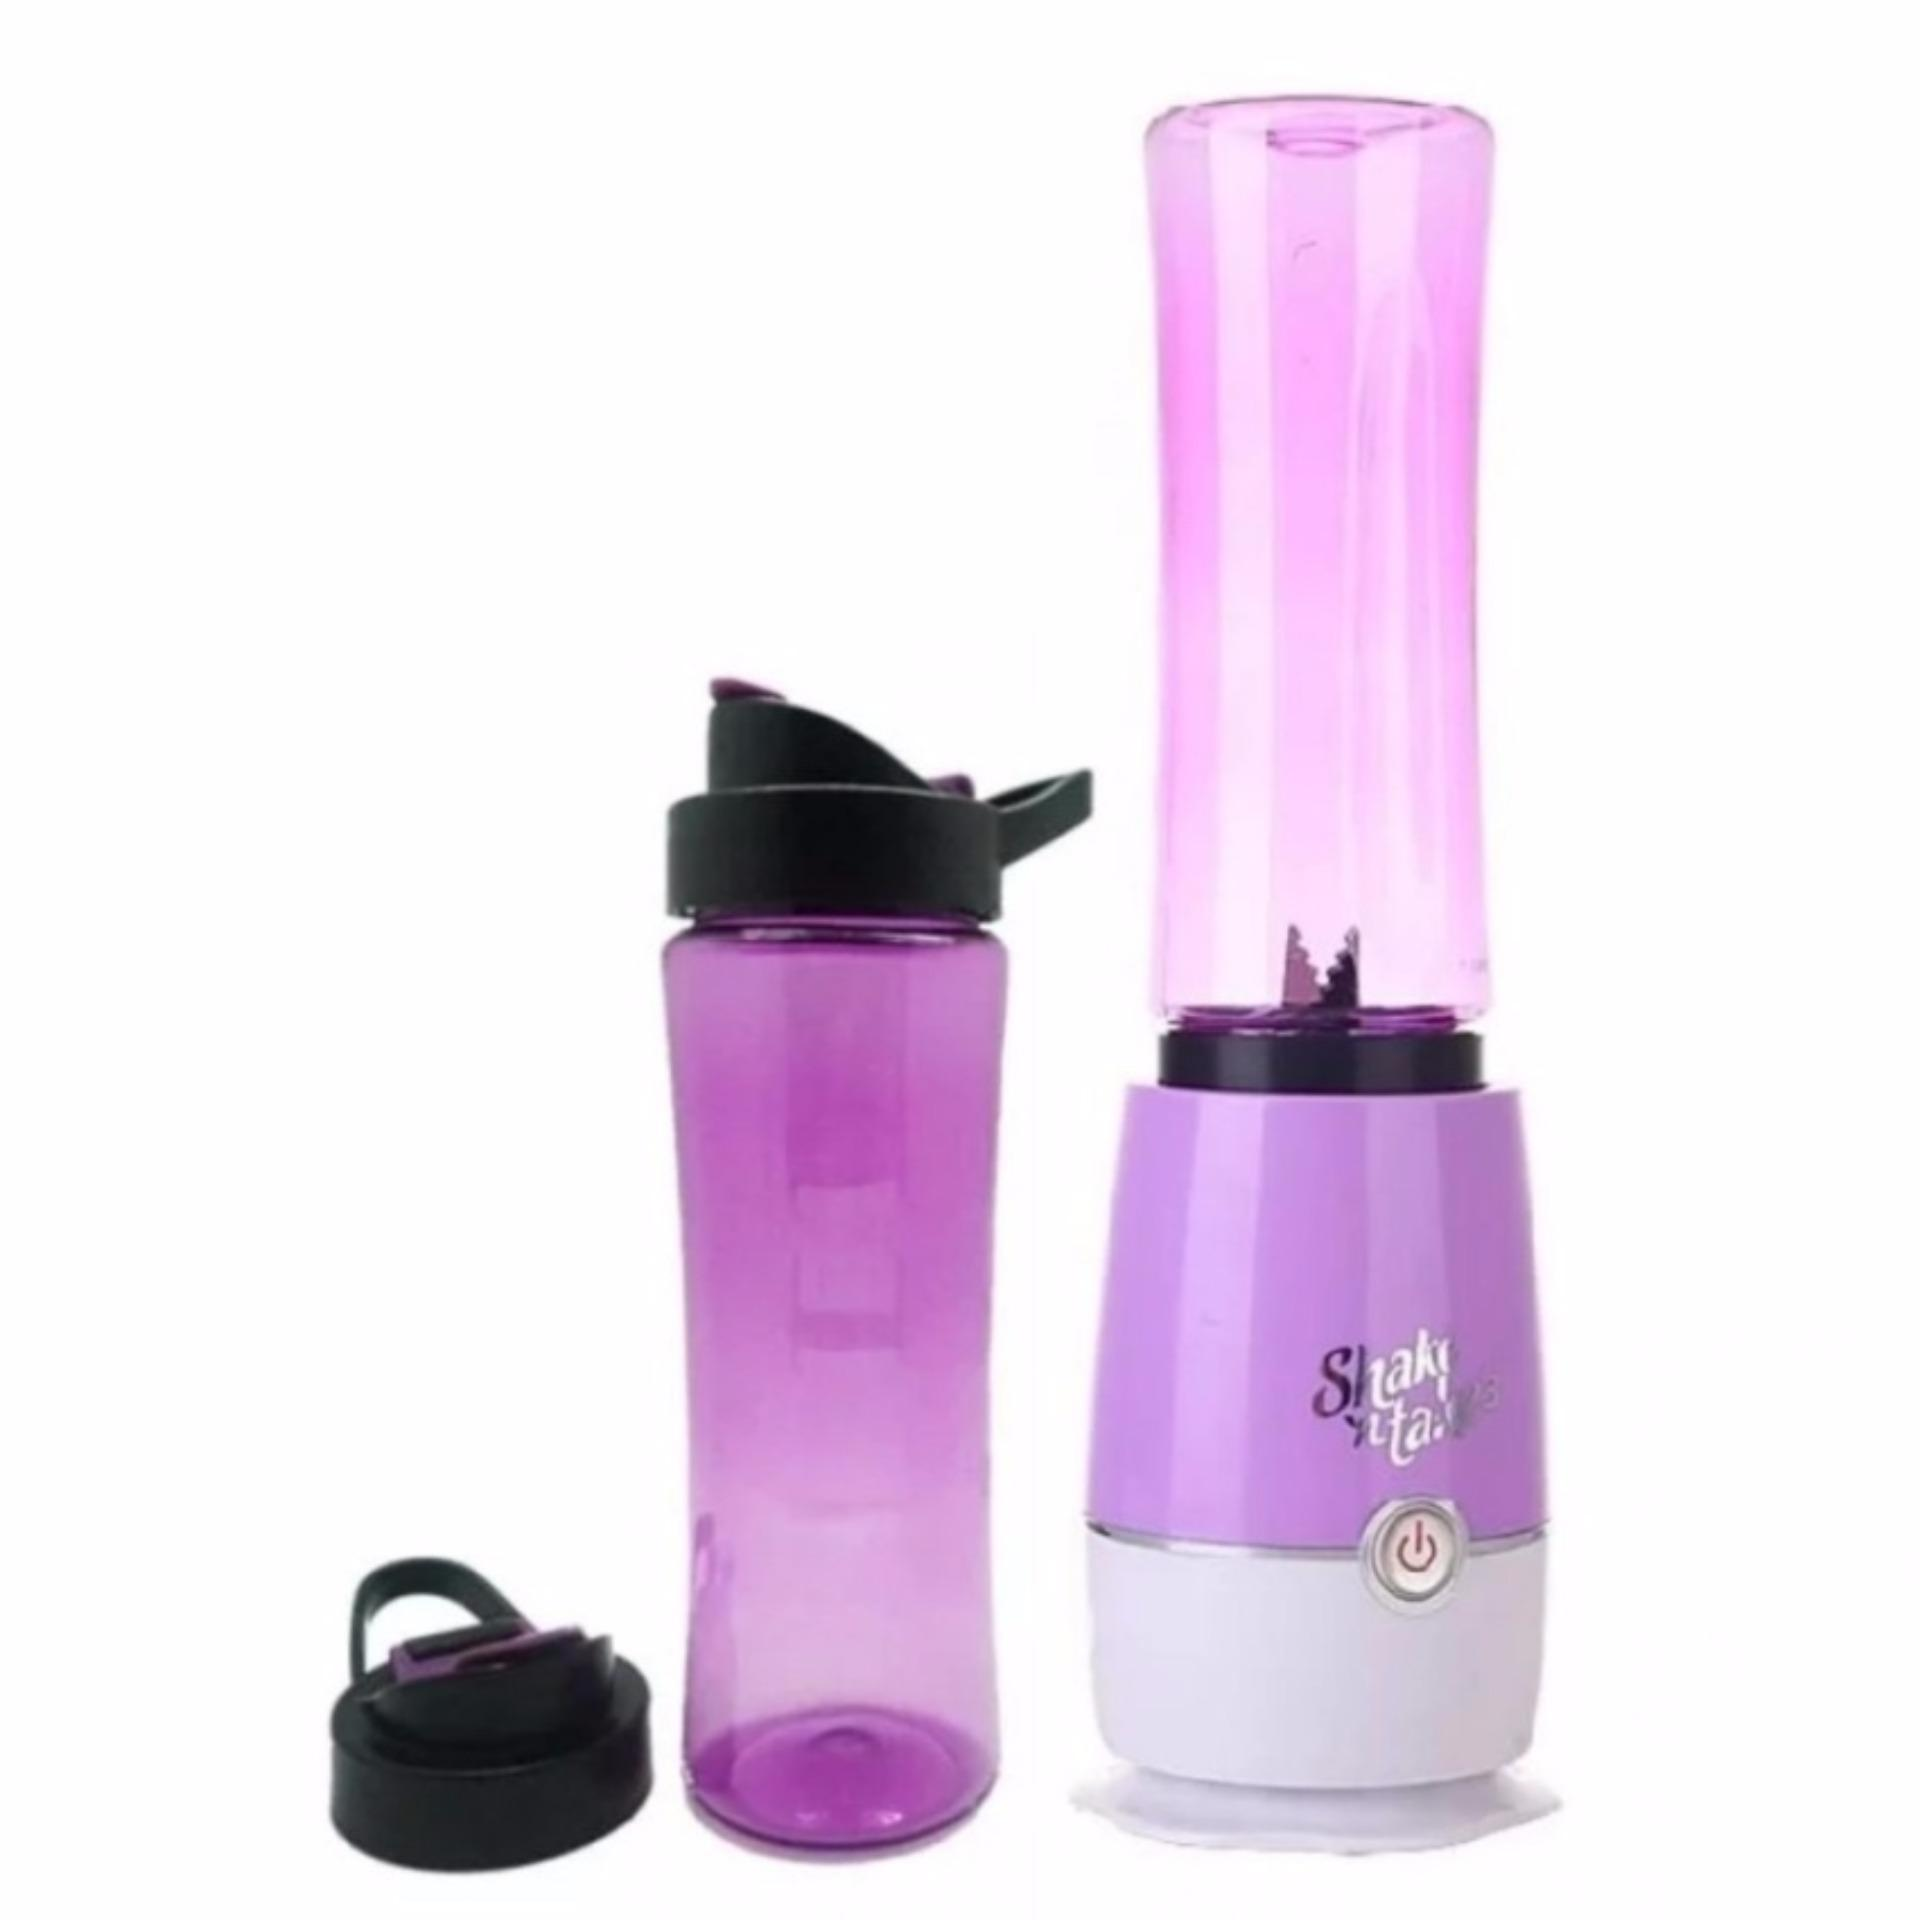 ... WeLove Shake 'n Take Generasi ke 3 Jus Blender - Botol dapat 2 (As ...